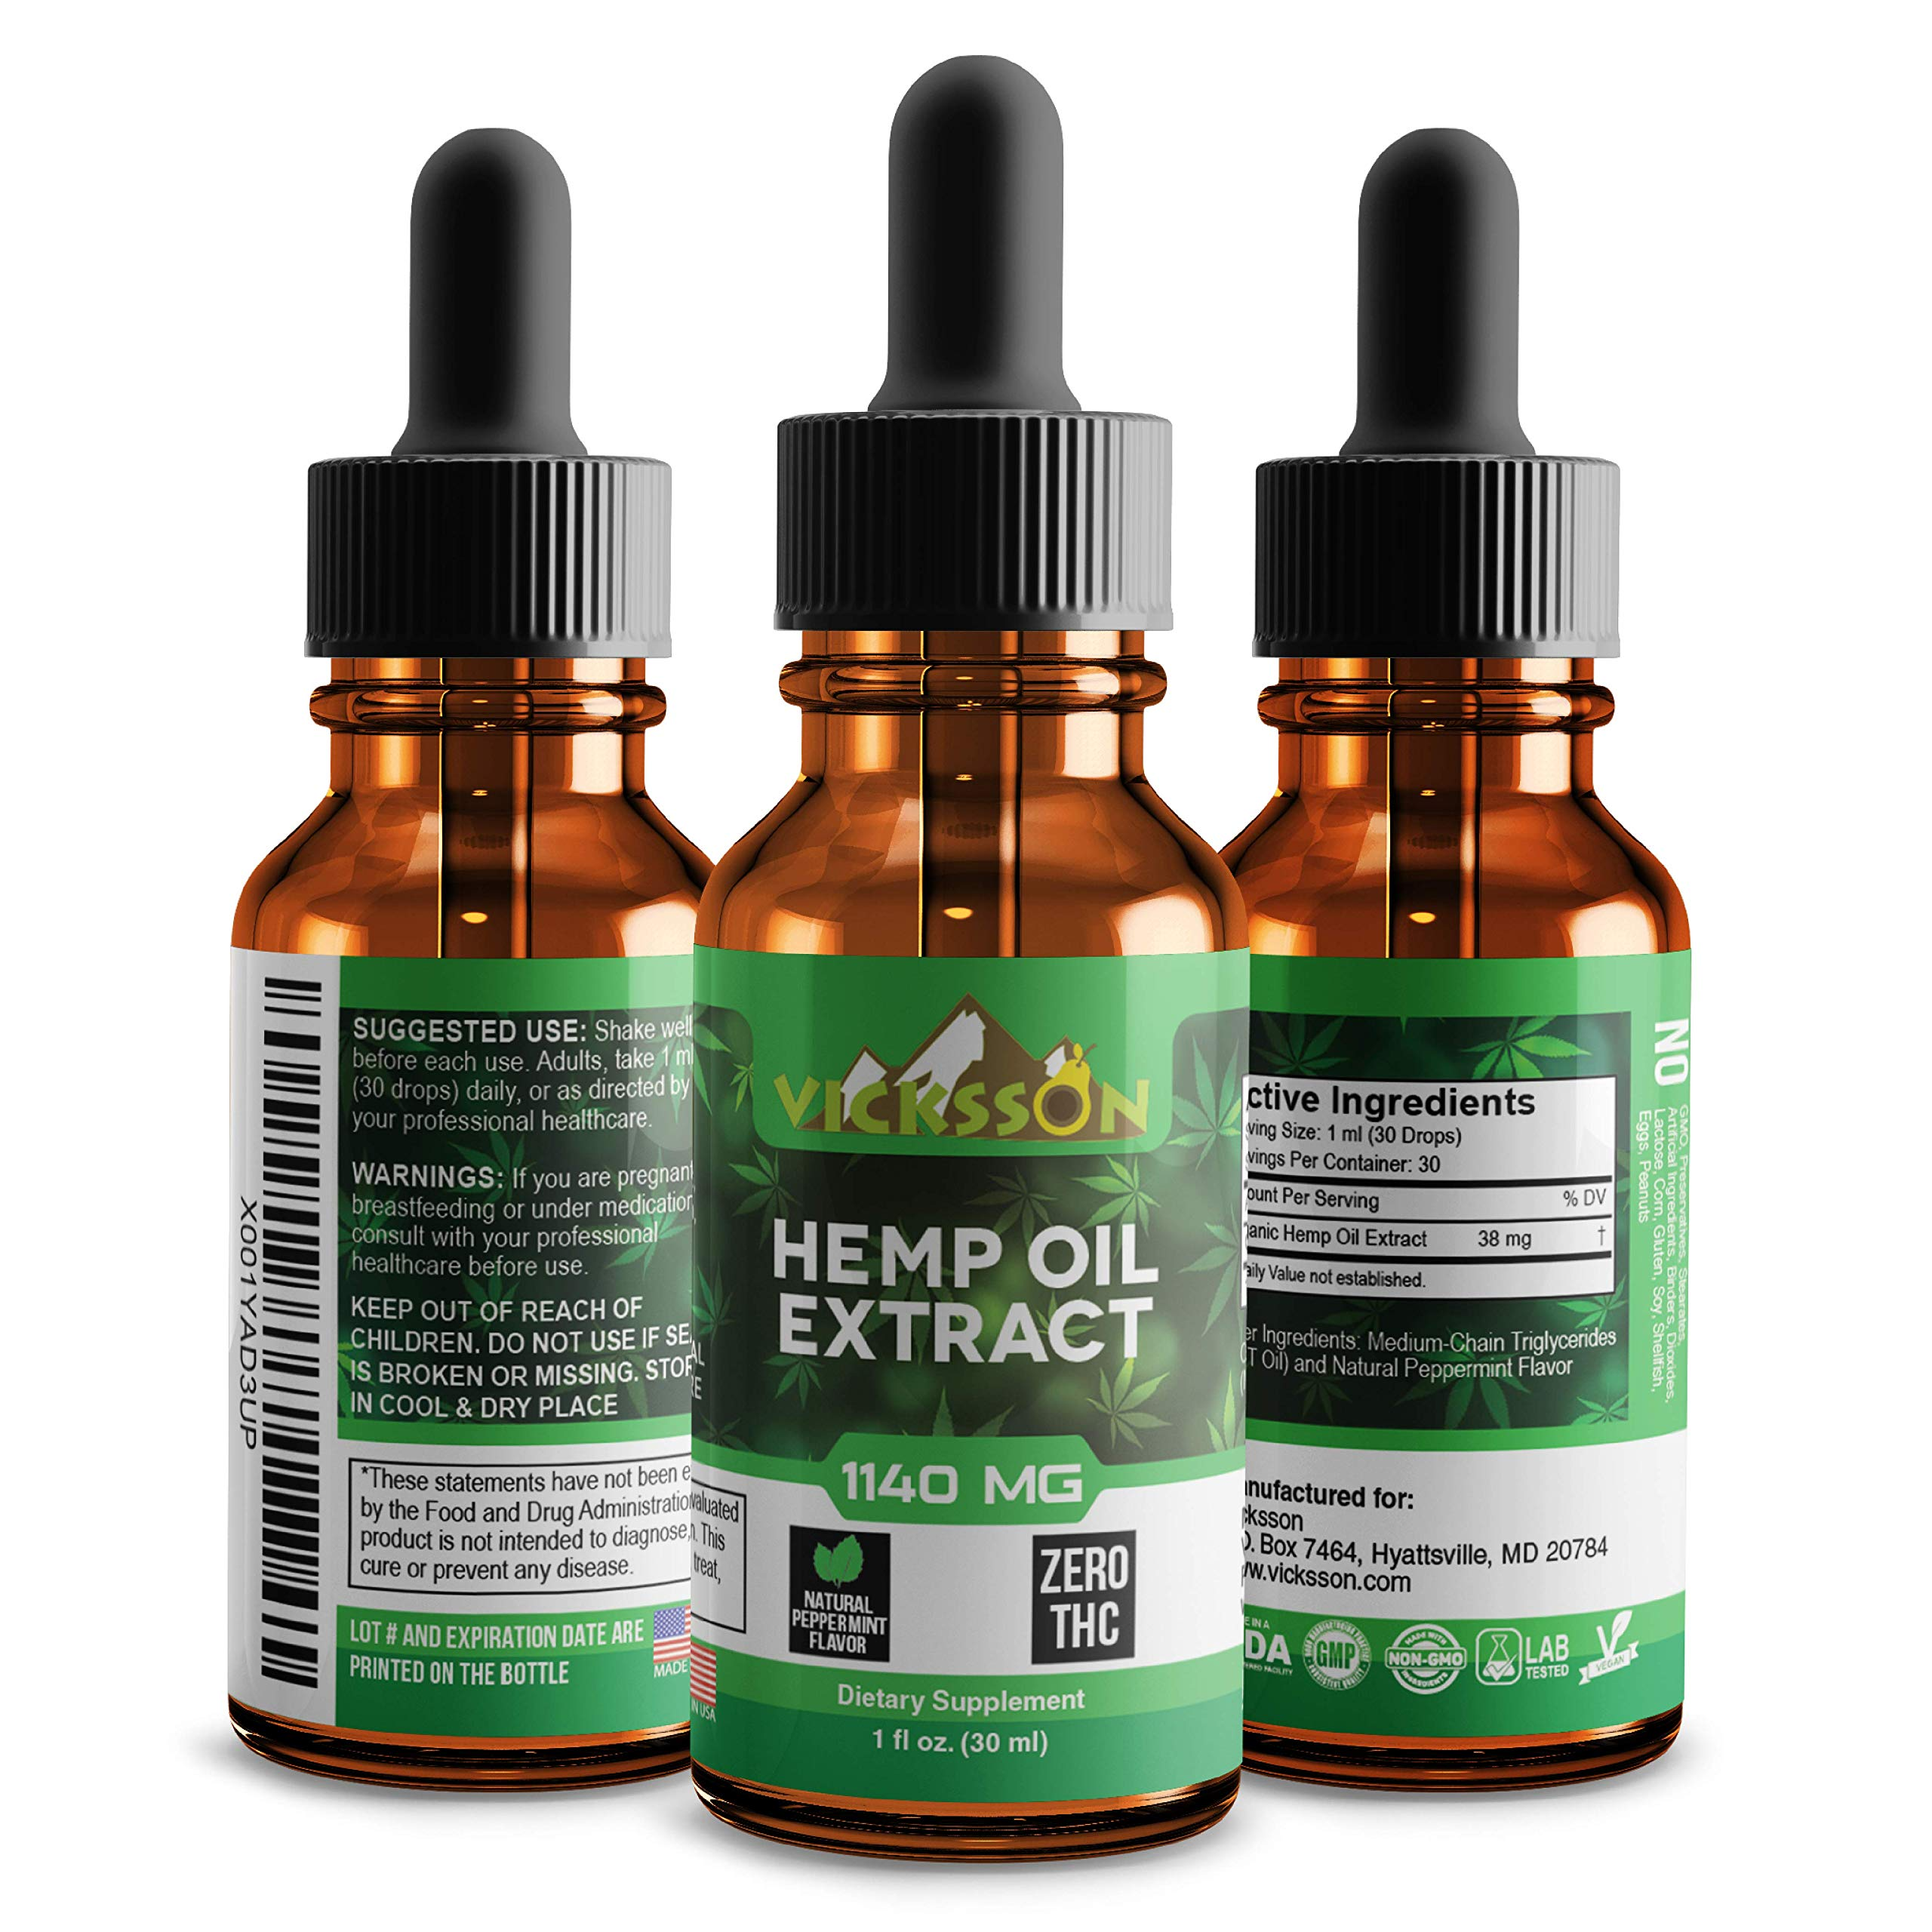 Hemp oil is great